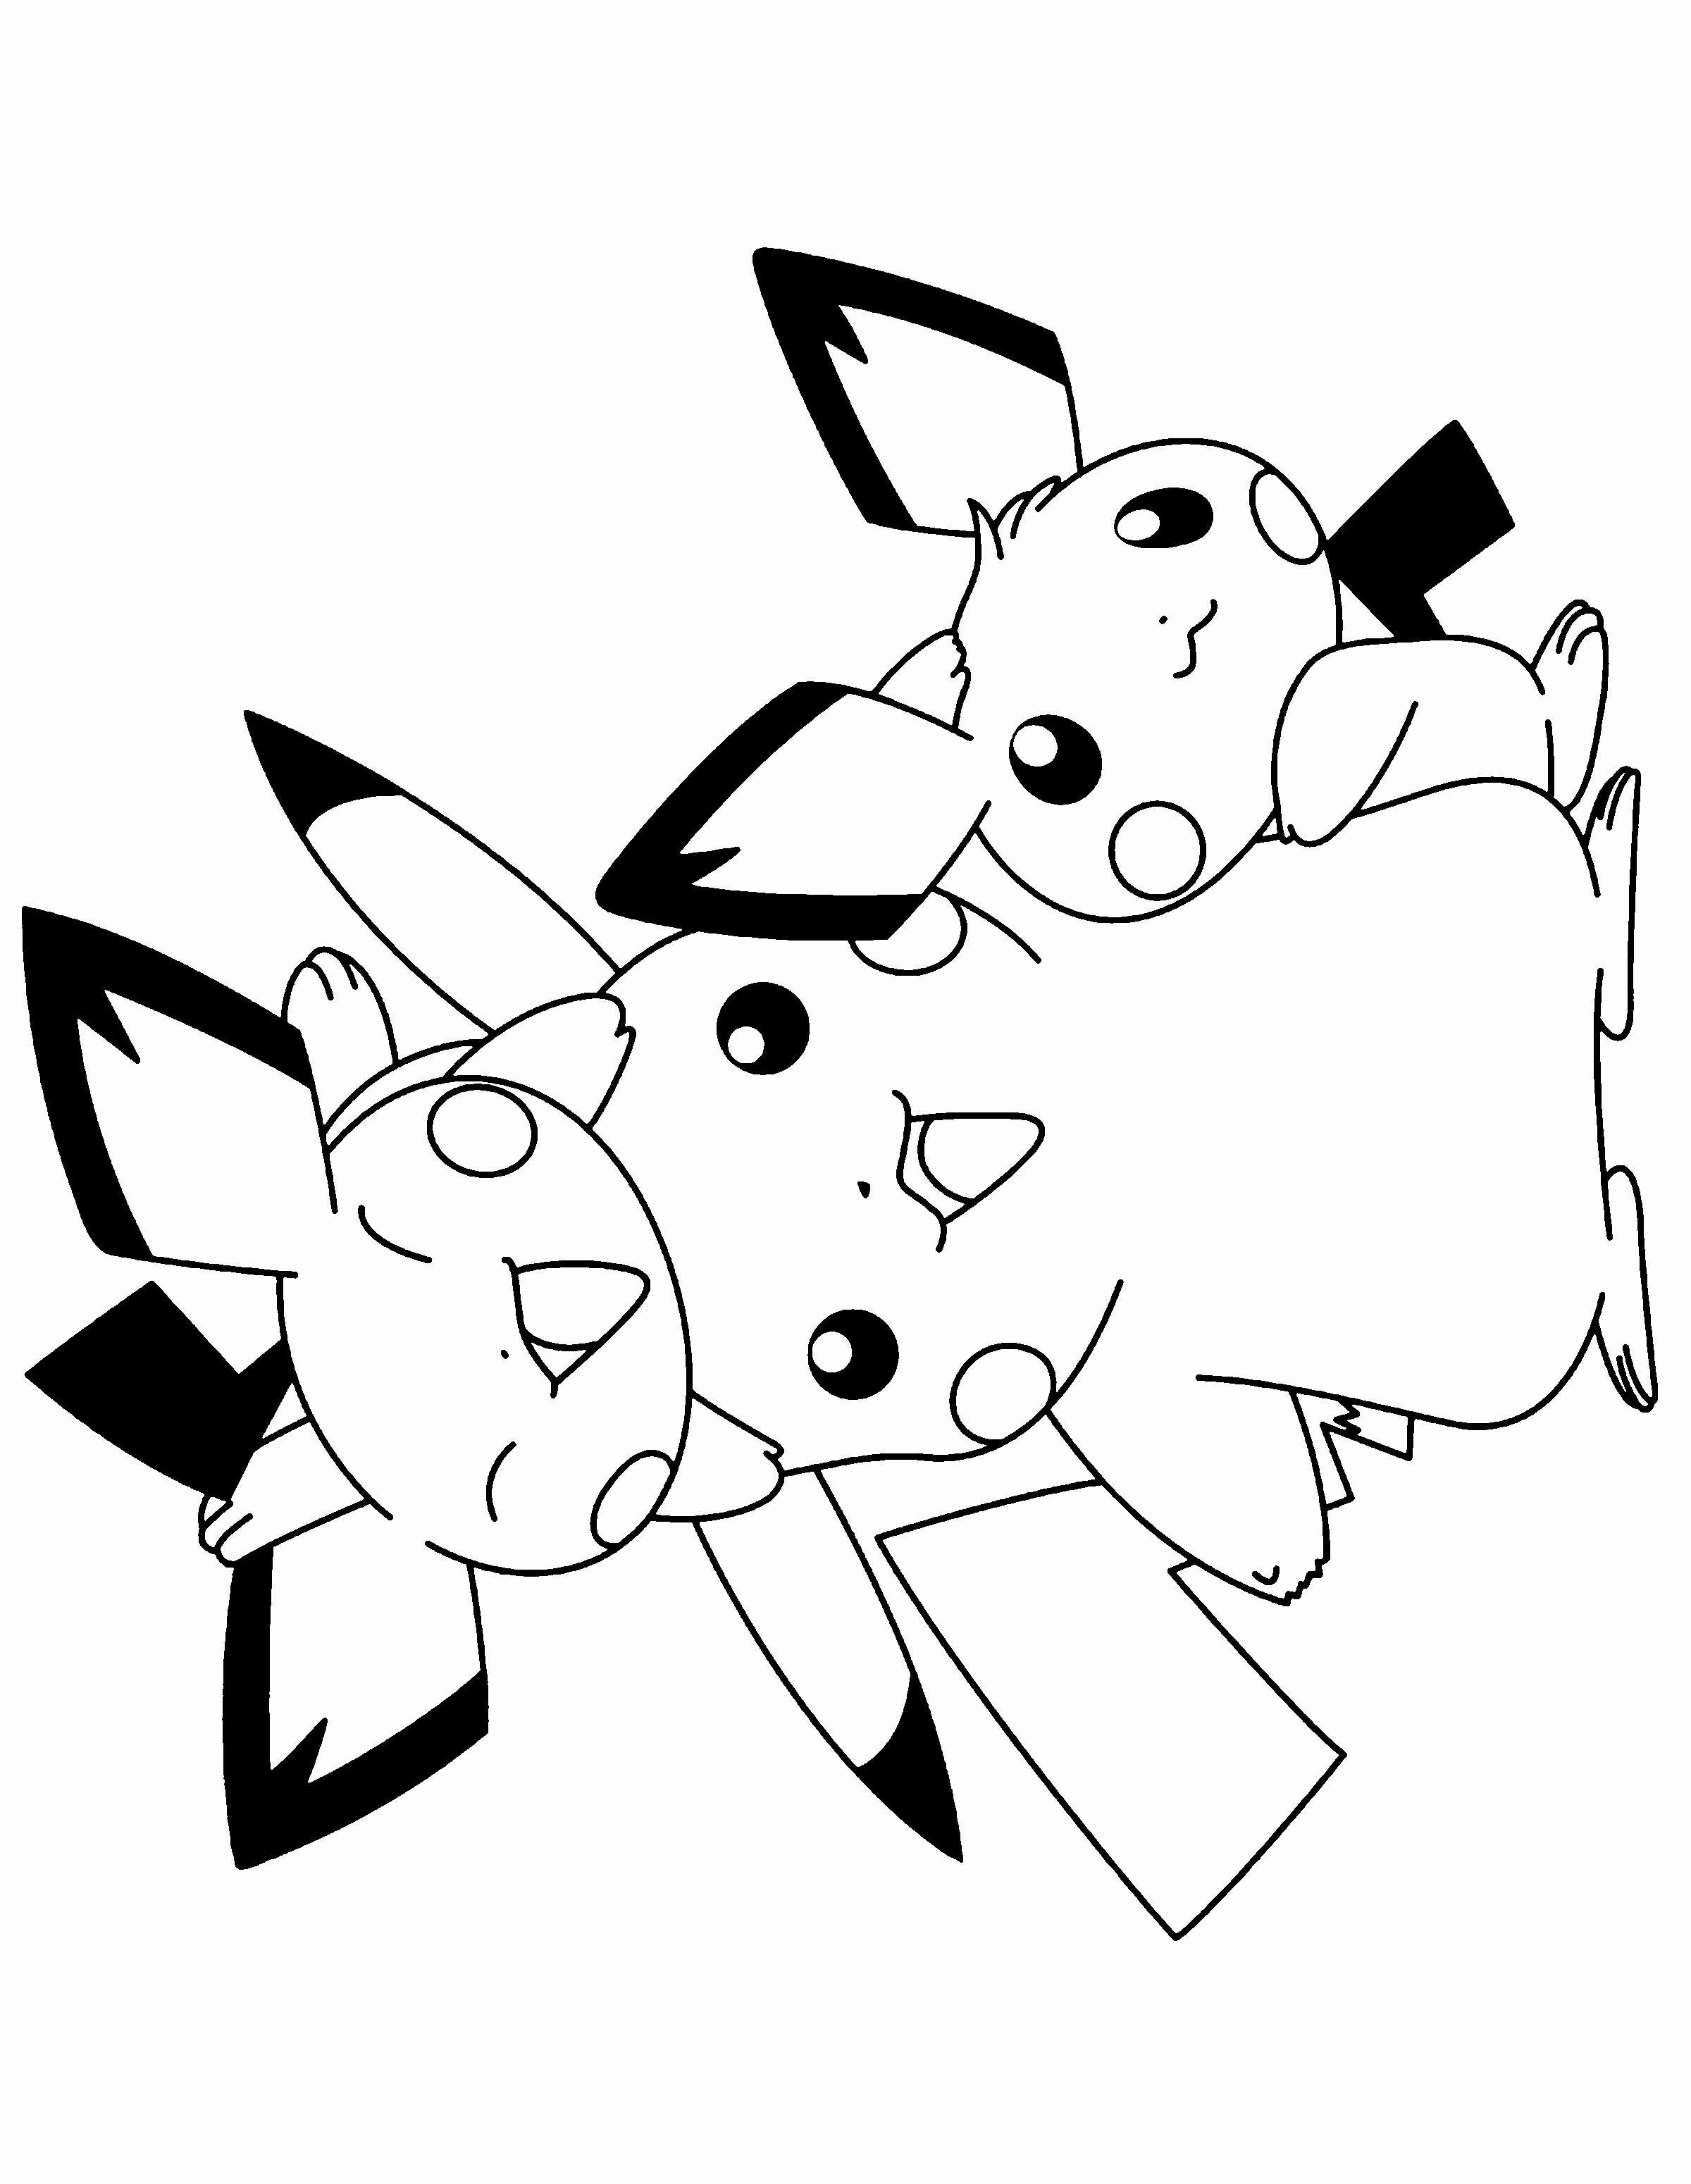 Alolan Raichu Coloring Page Best Of Pikachu And Pichu Coloring Sheets Coloring Pages Pokemon Coloring Pages Pikachu Coloring Page Bear Coloring Pages